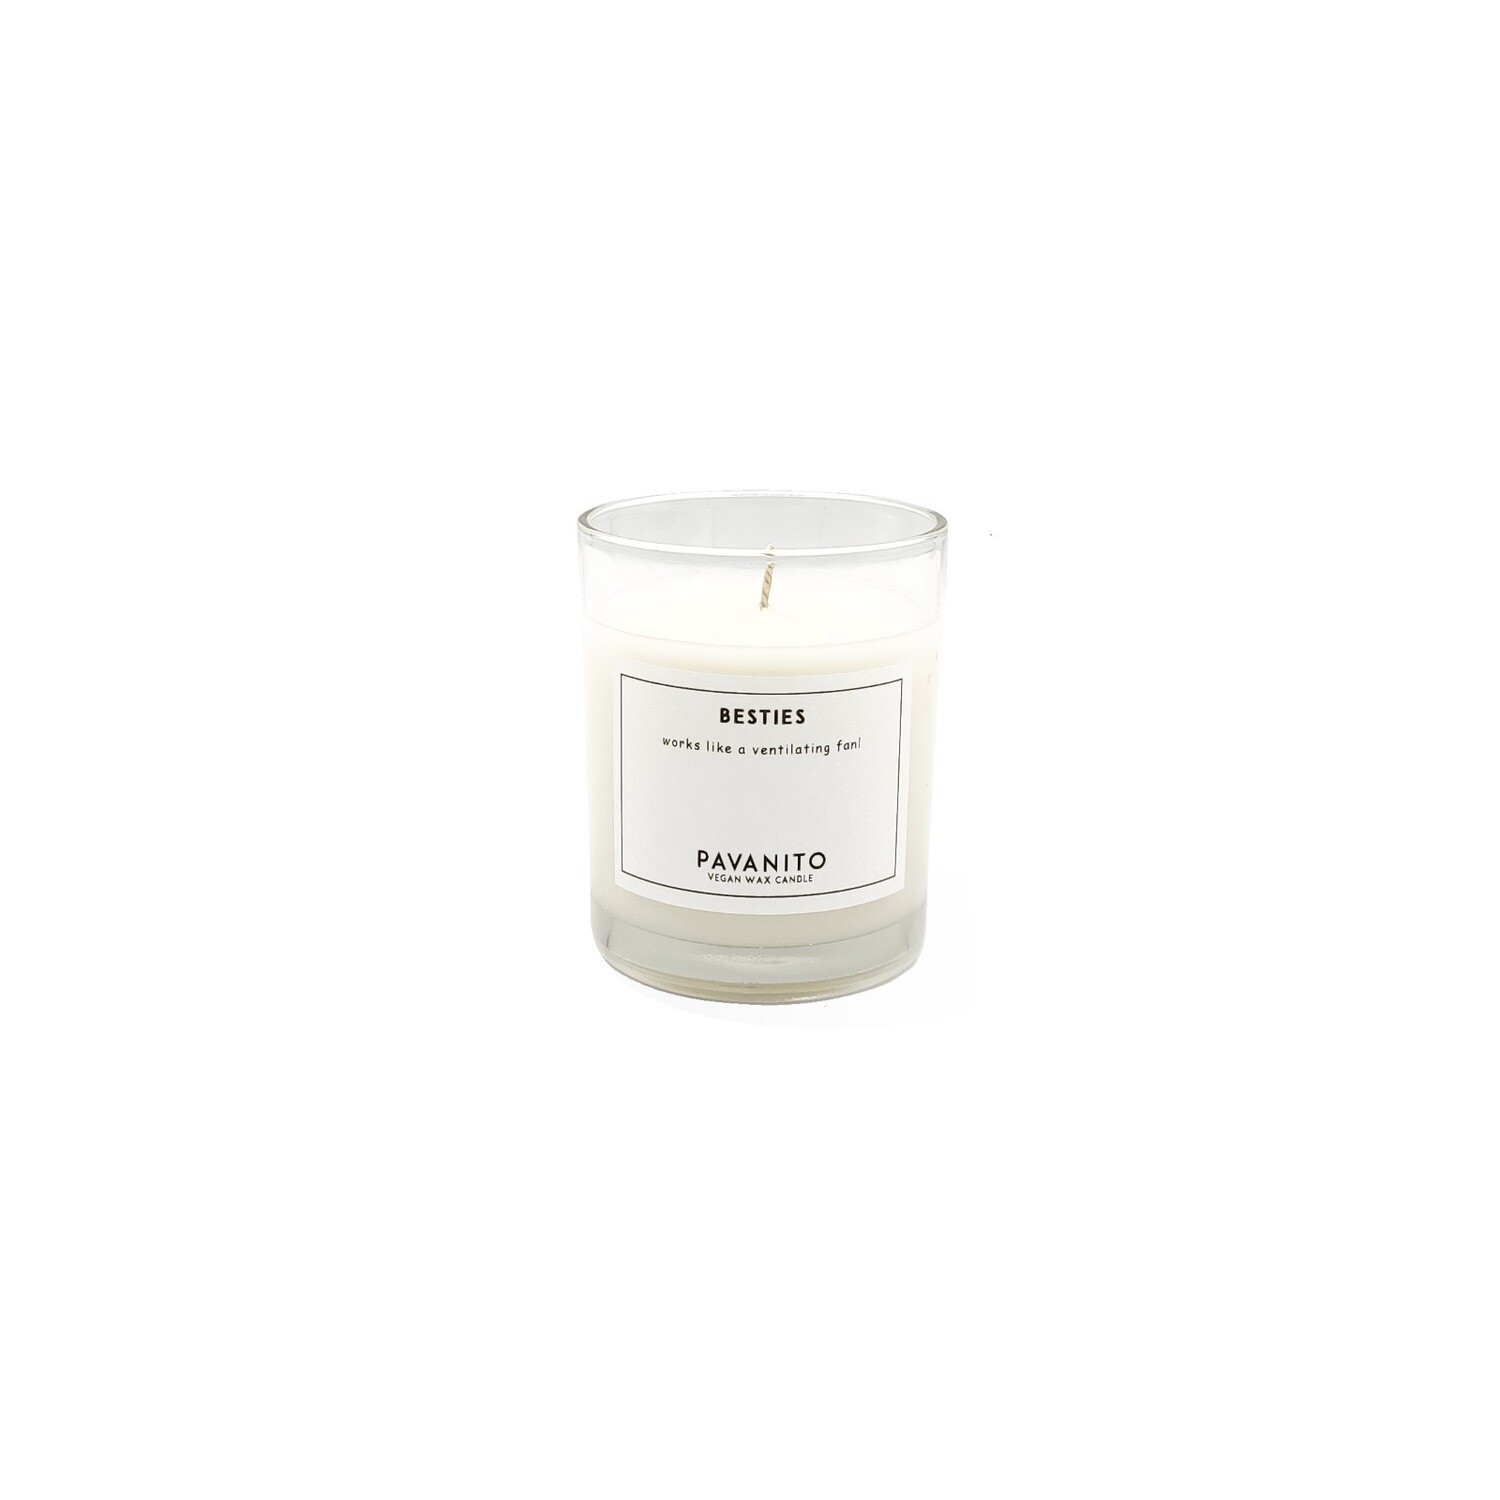 Candle for your Bestie!